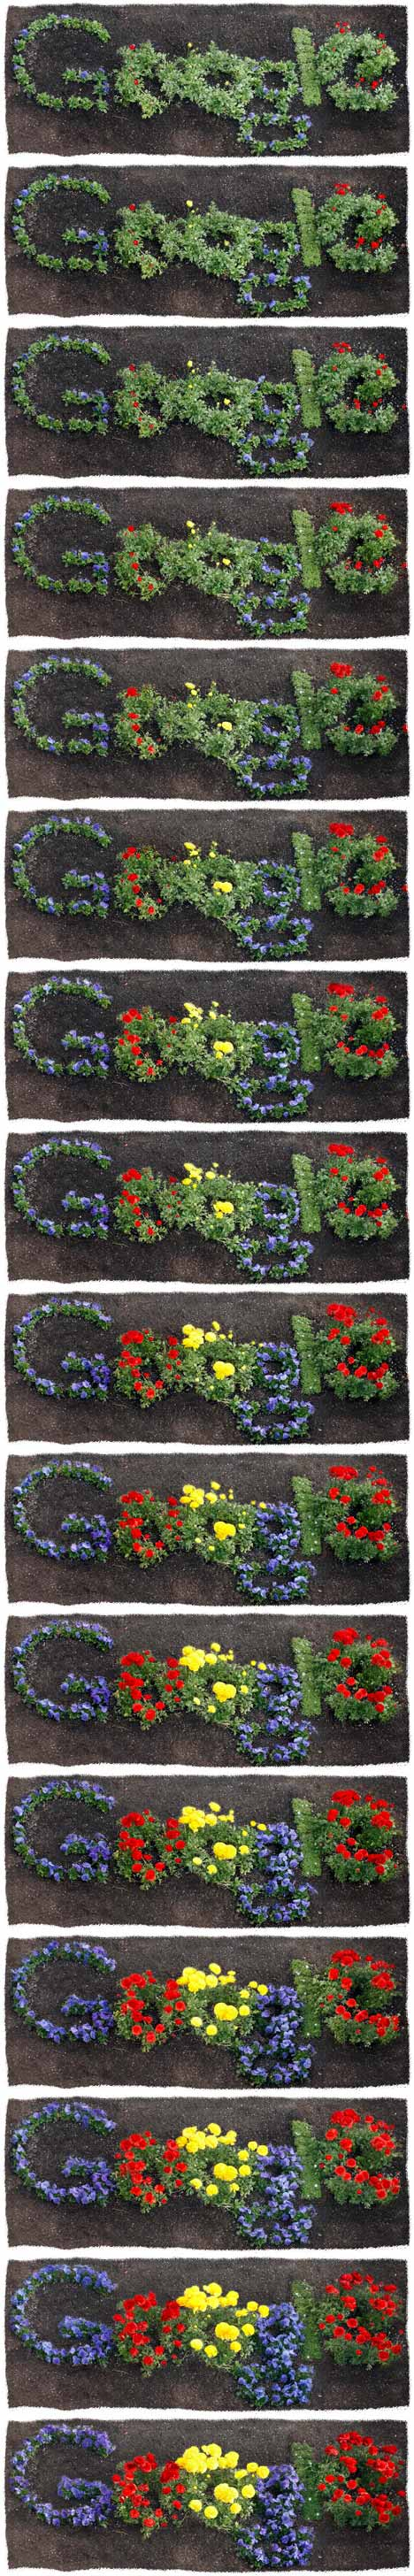 Still shots of Earth Day 2012 Google Doodle